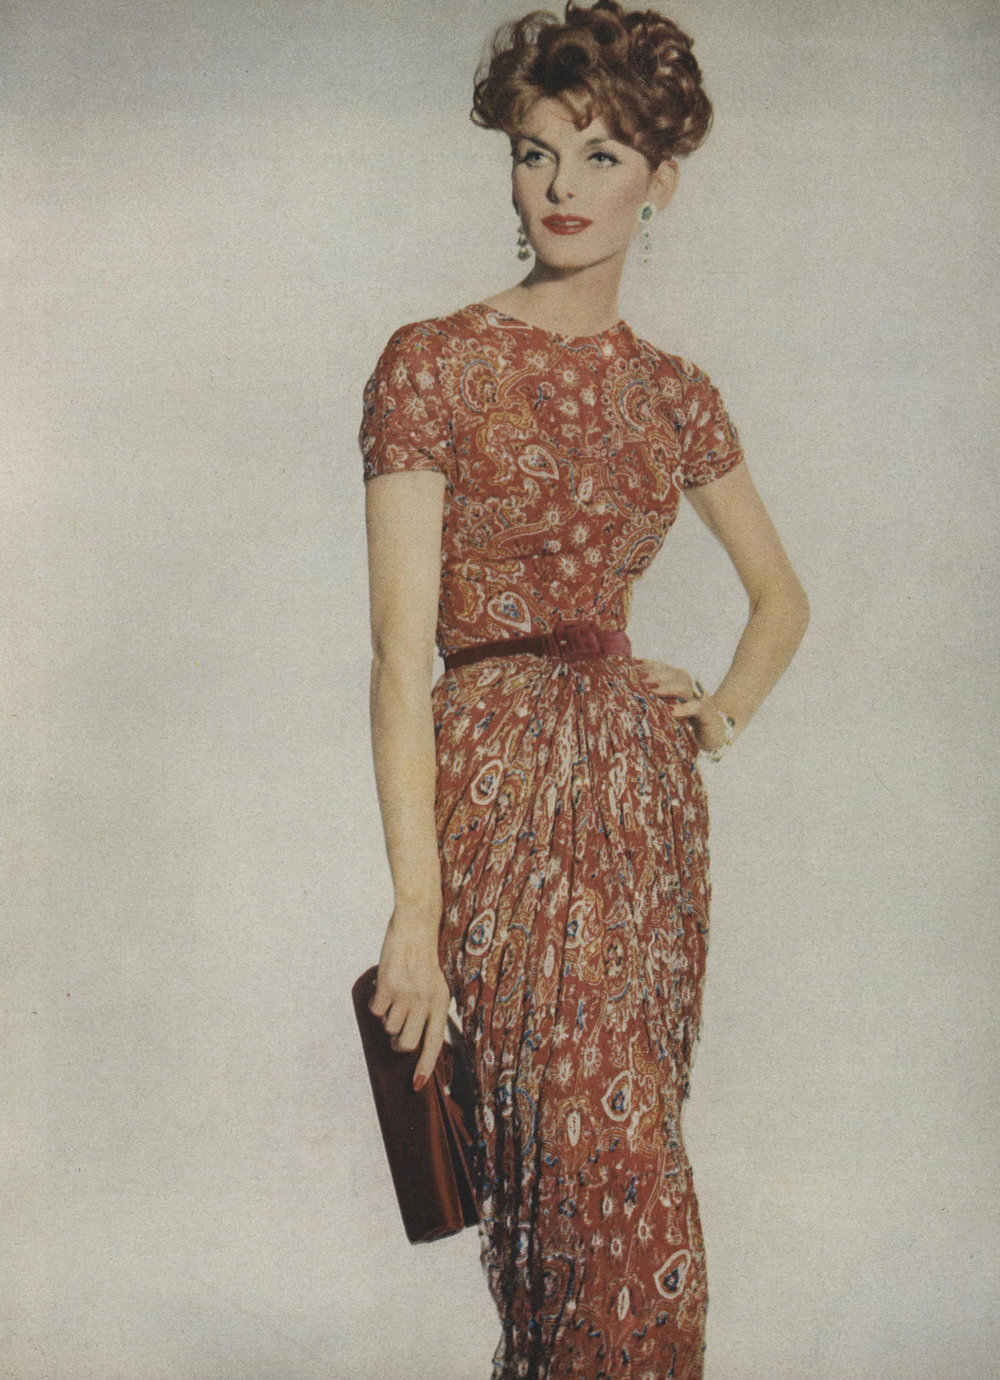 Paisley chiffon encrusted with bead embroidery and gilt thread on a deceptively simple dinner dress. Photographed by Irving Penn for Vogue, October 1967.